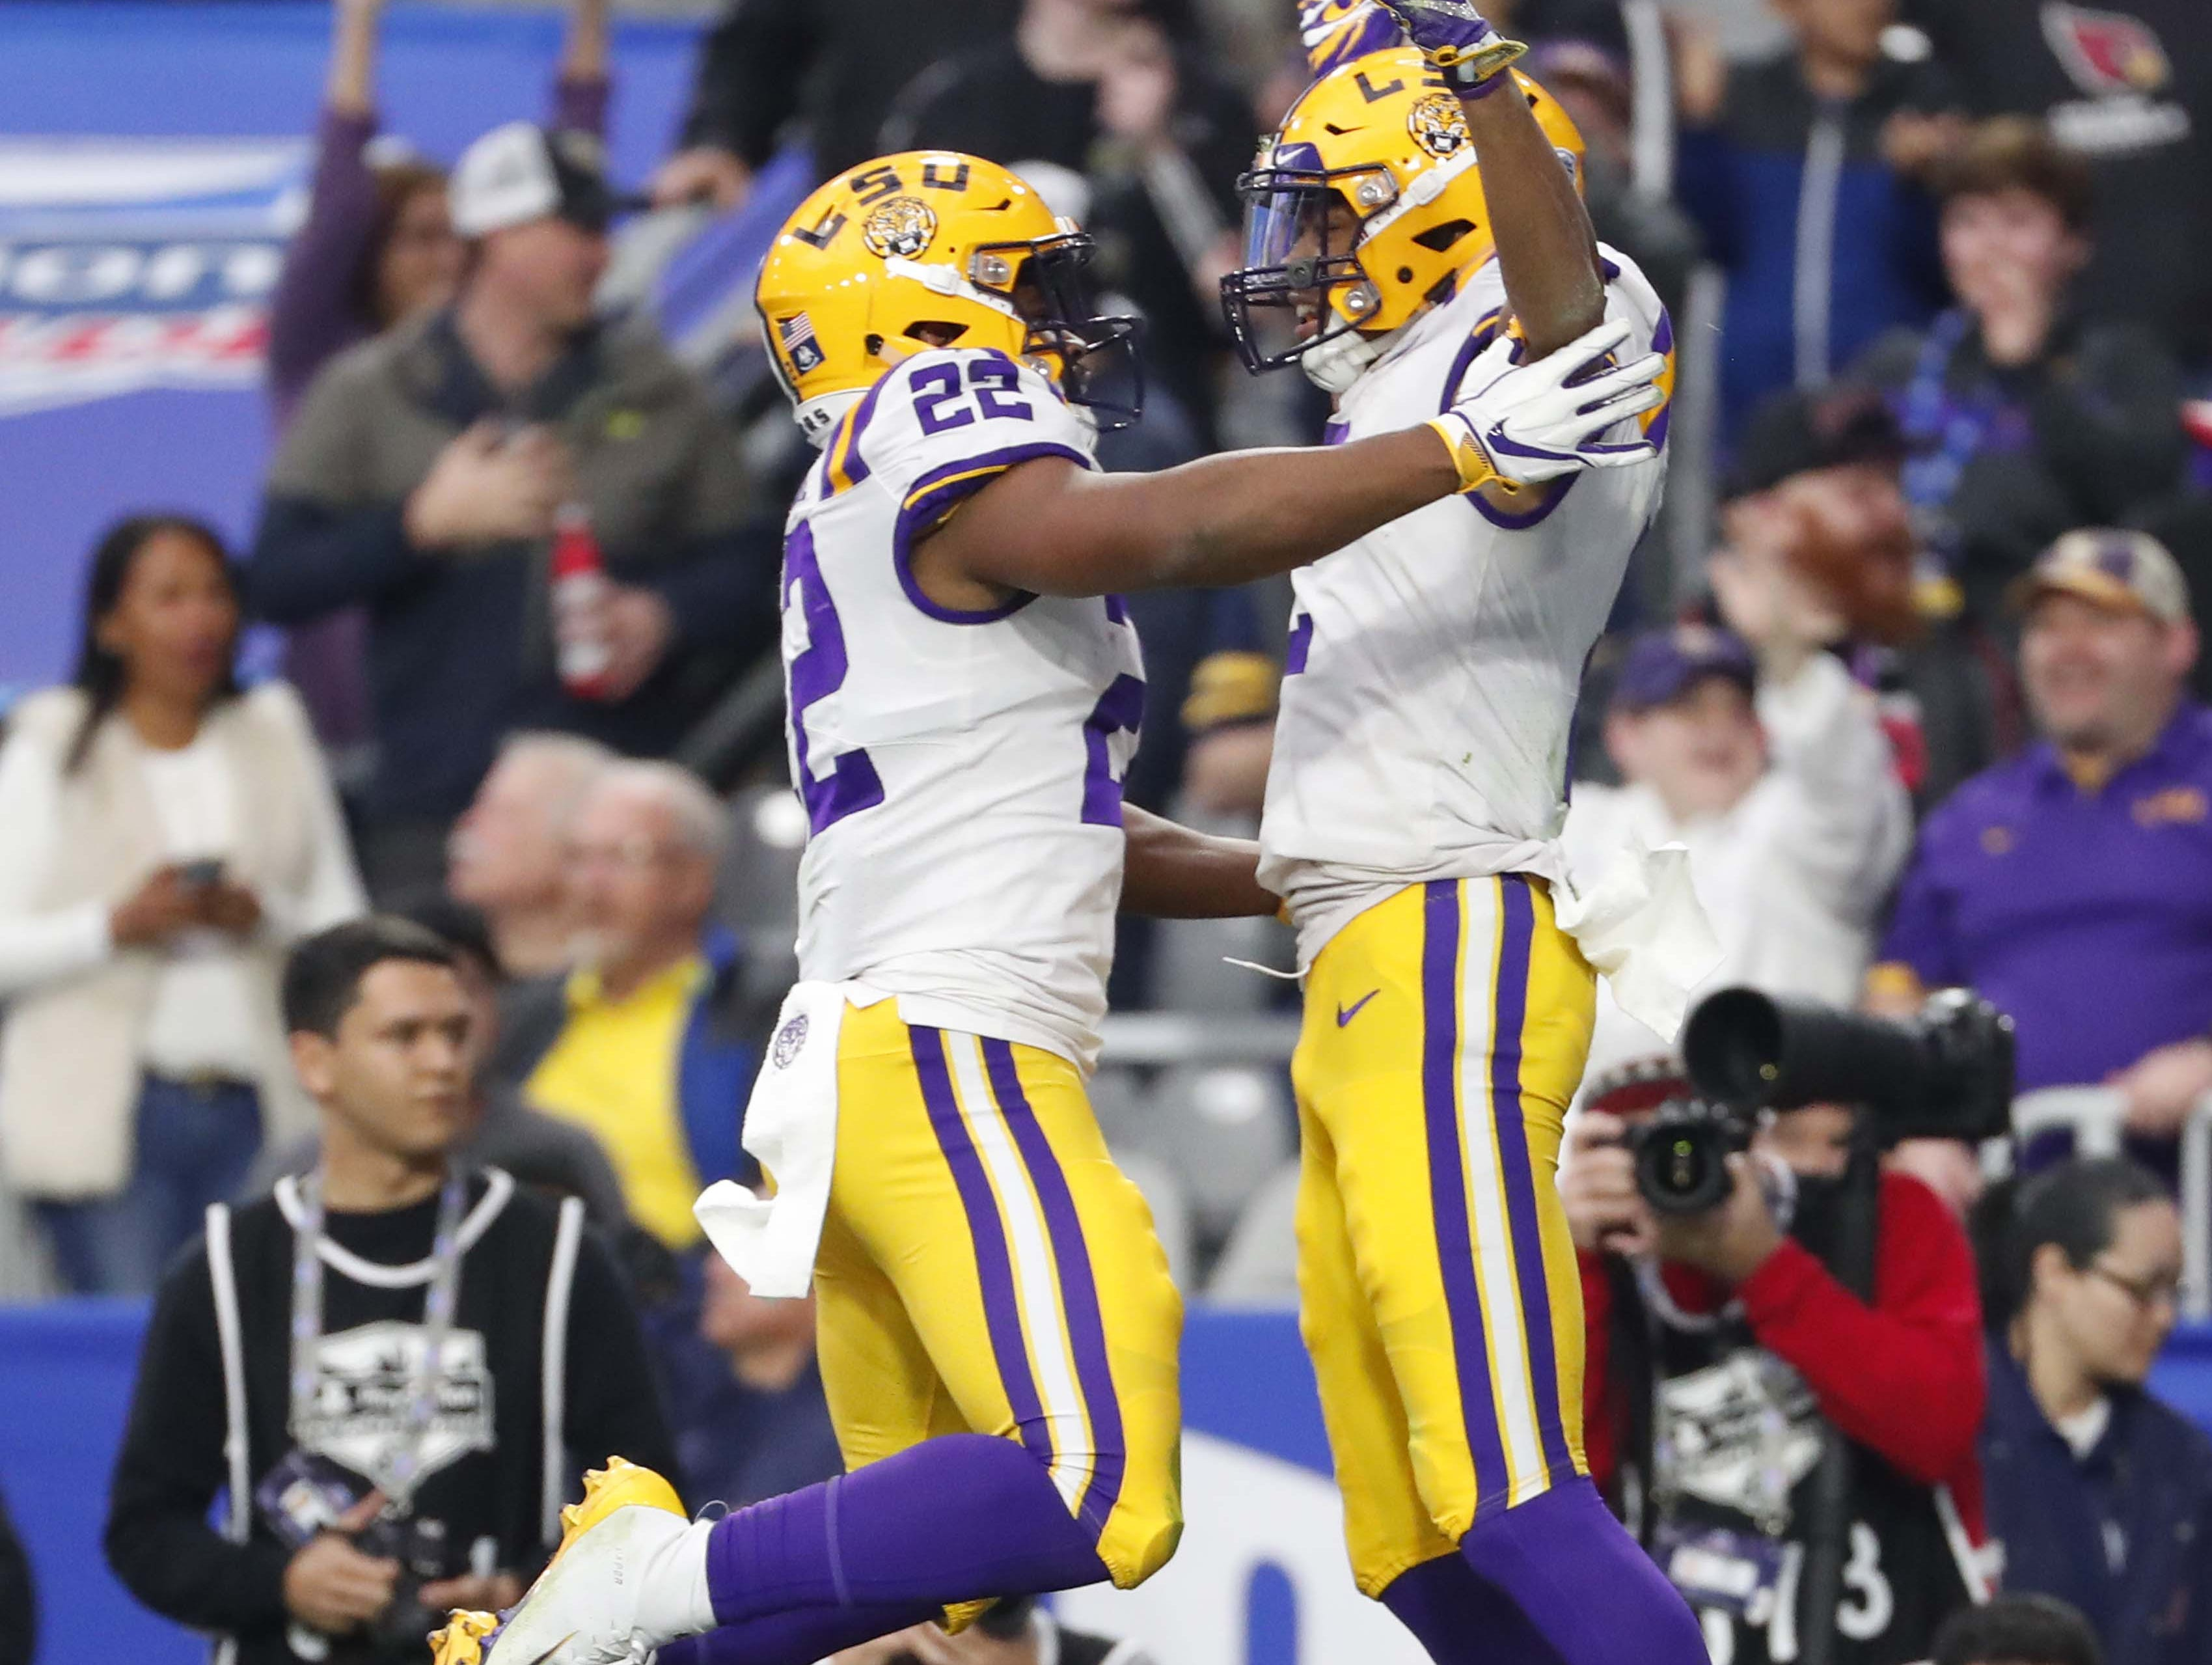 LSU wide receiver Justin Jefferson (right) celebrates his touchdown catch with running back Clyde Edwards-Helaire (22) against UCF during the Fiesta Bowl in Glendale January 1, 2019.